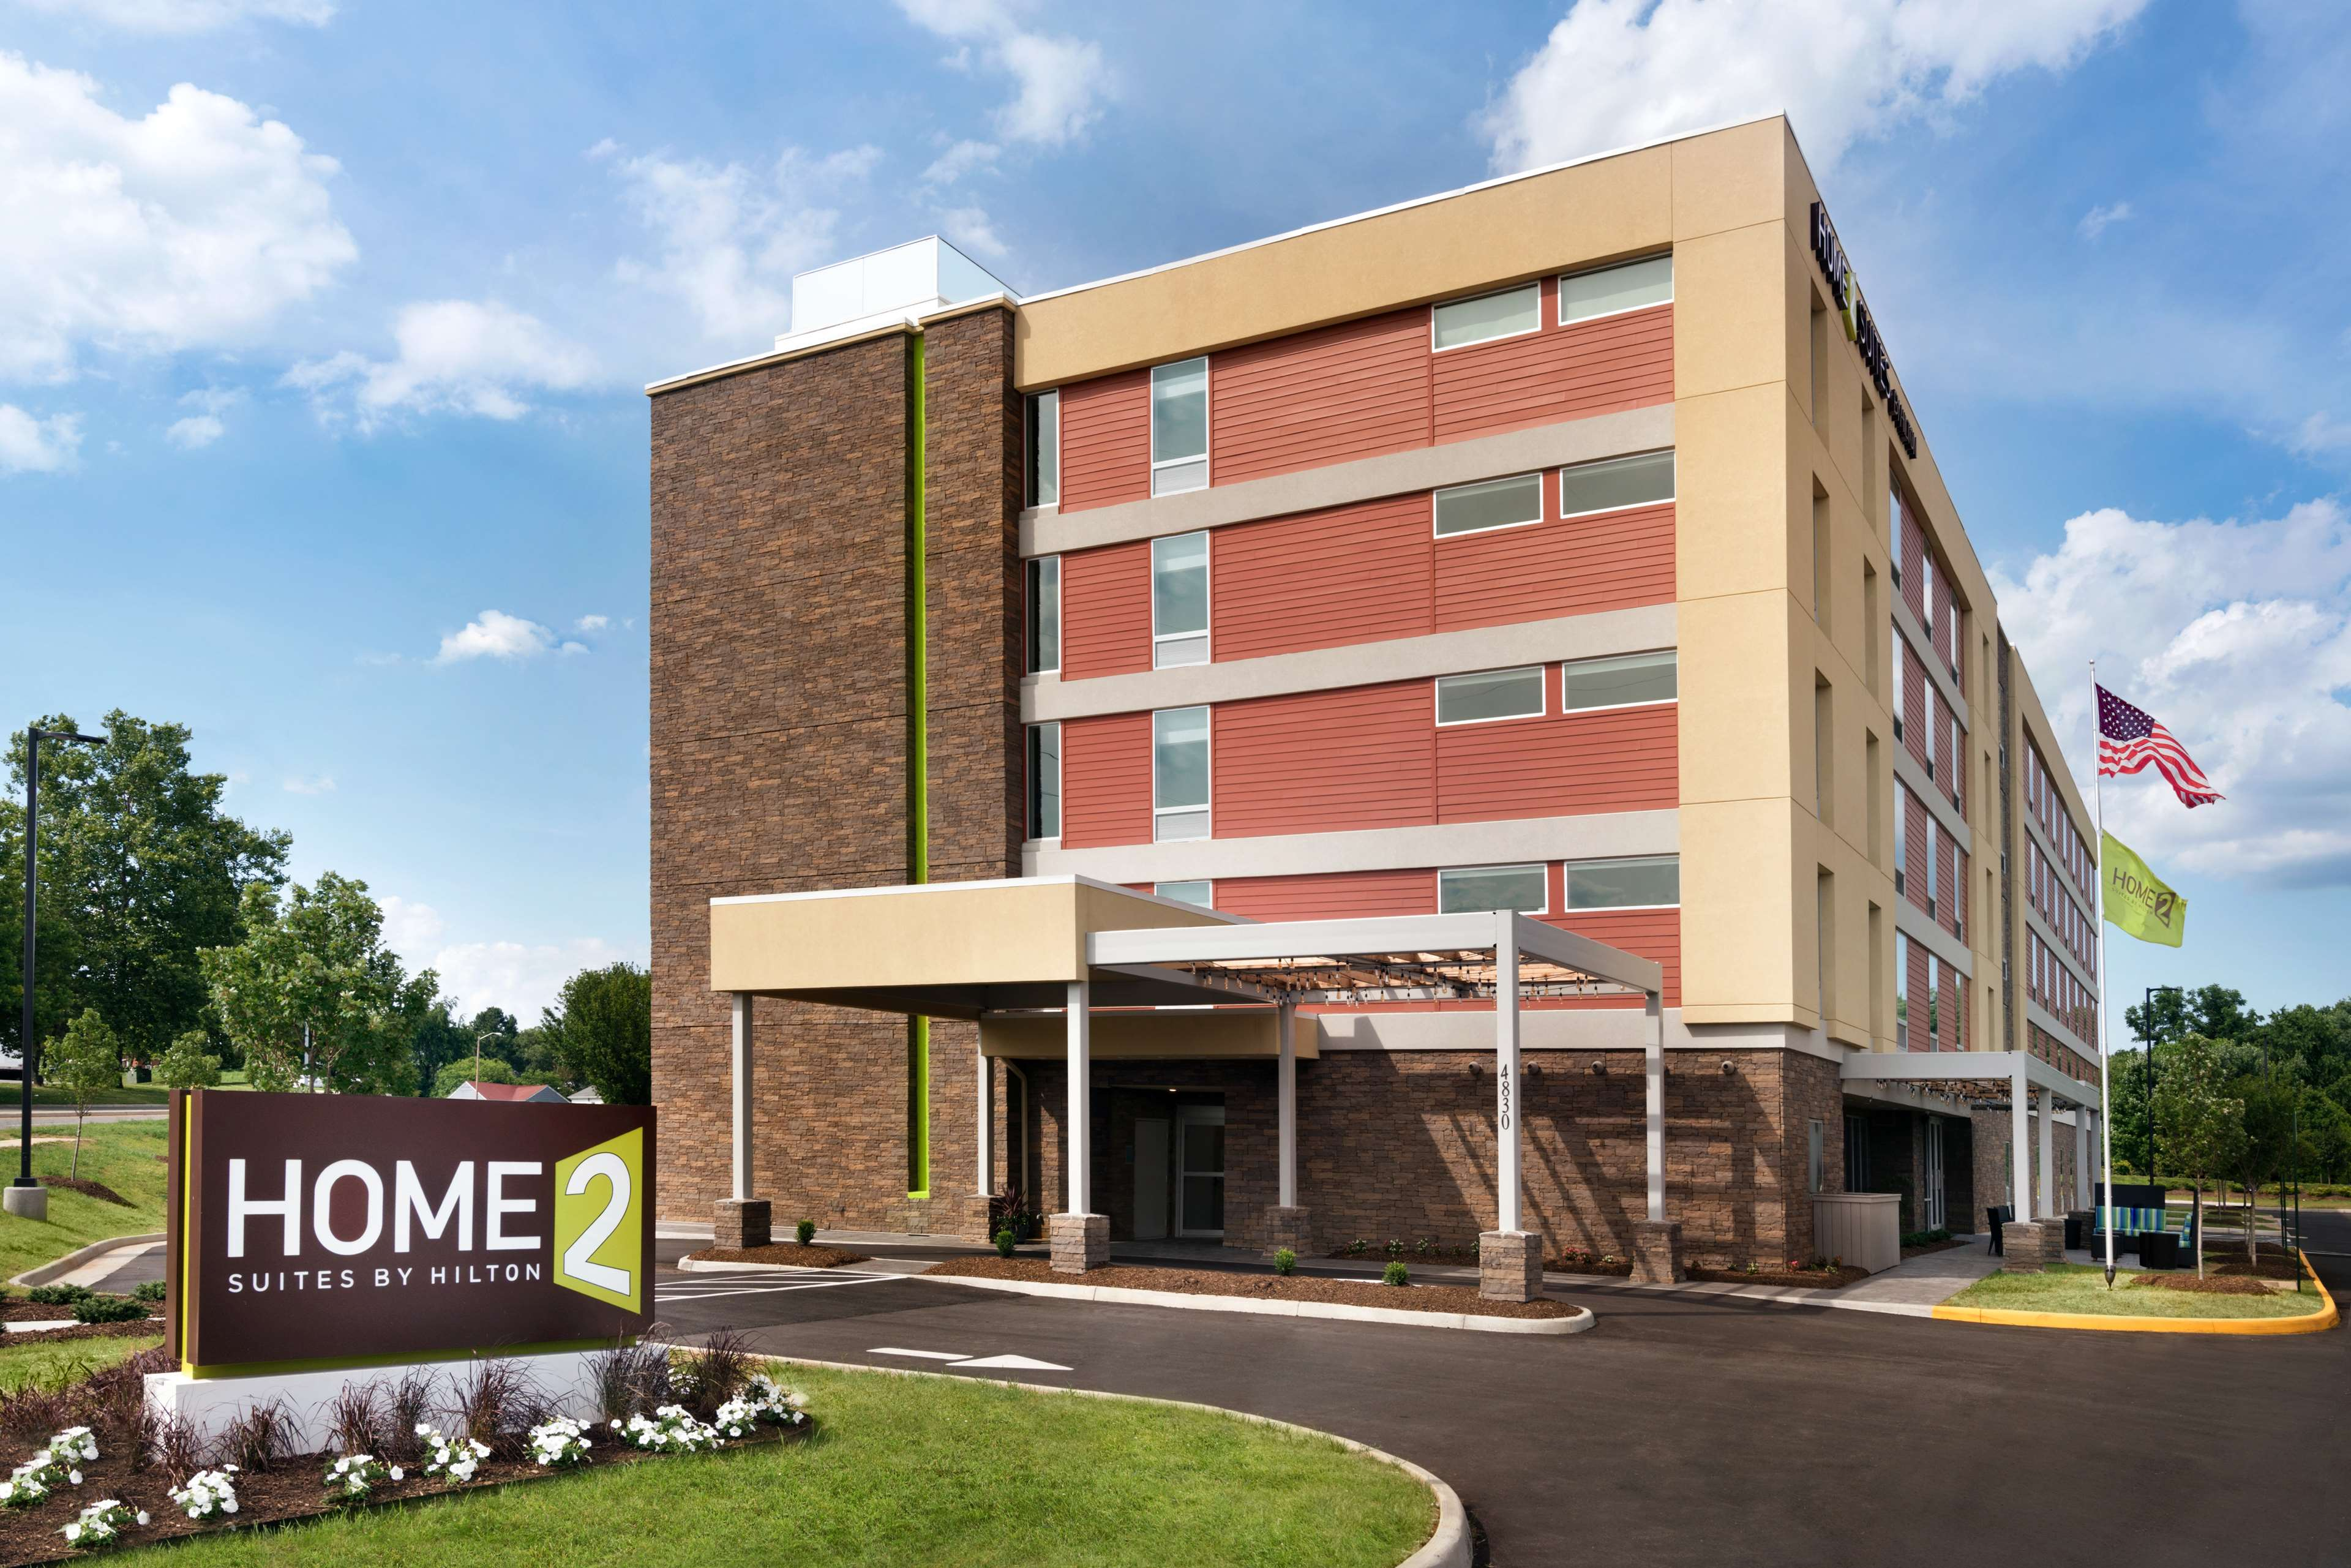 Home2 Suites by Hilton Roanoke image 0